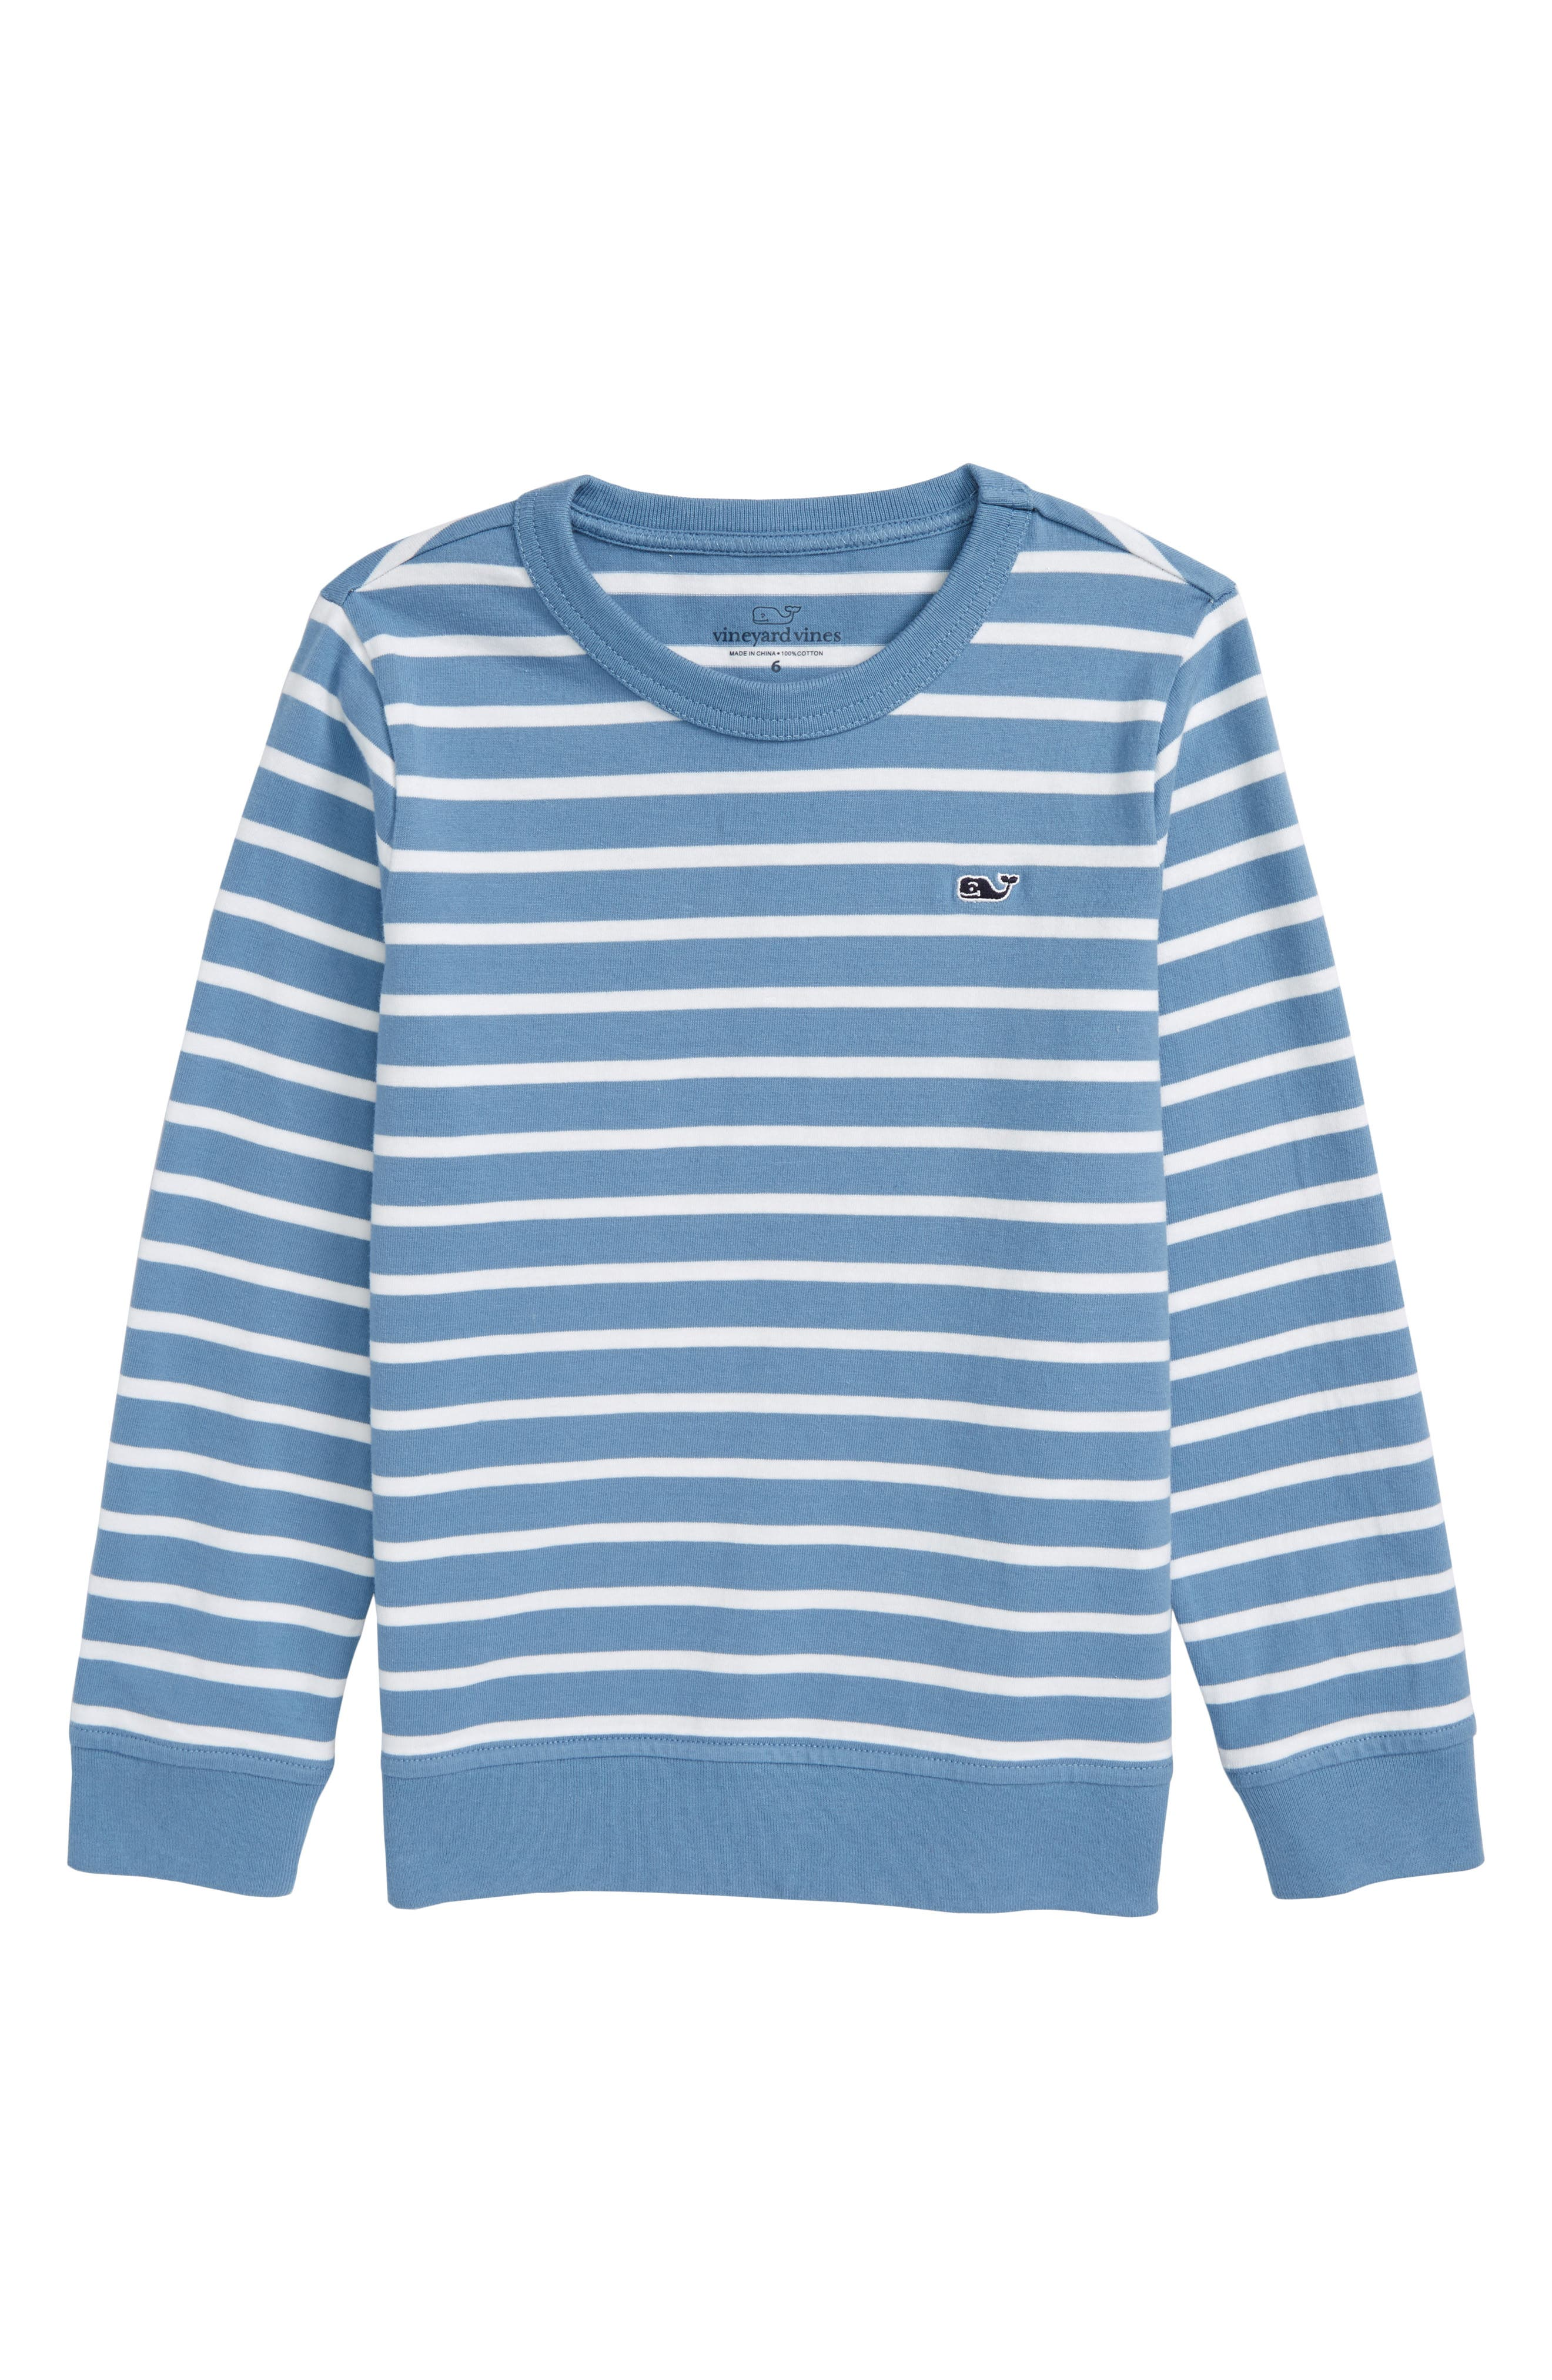 Stripe Crewneck Sweater,                         Main,                         color, 477